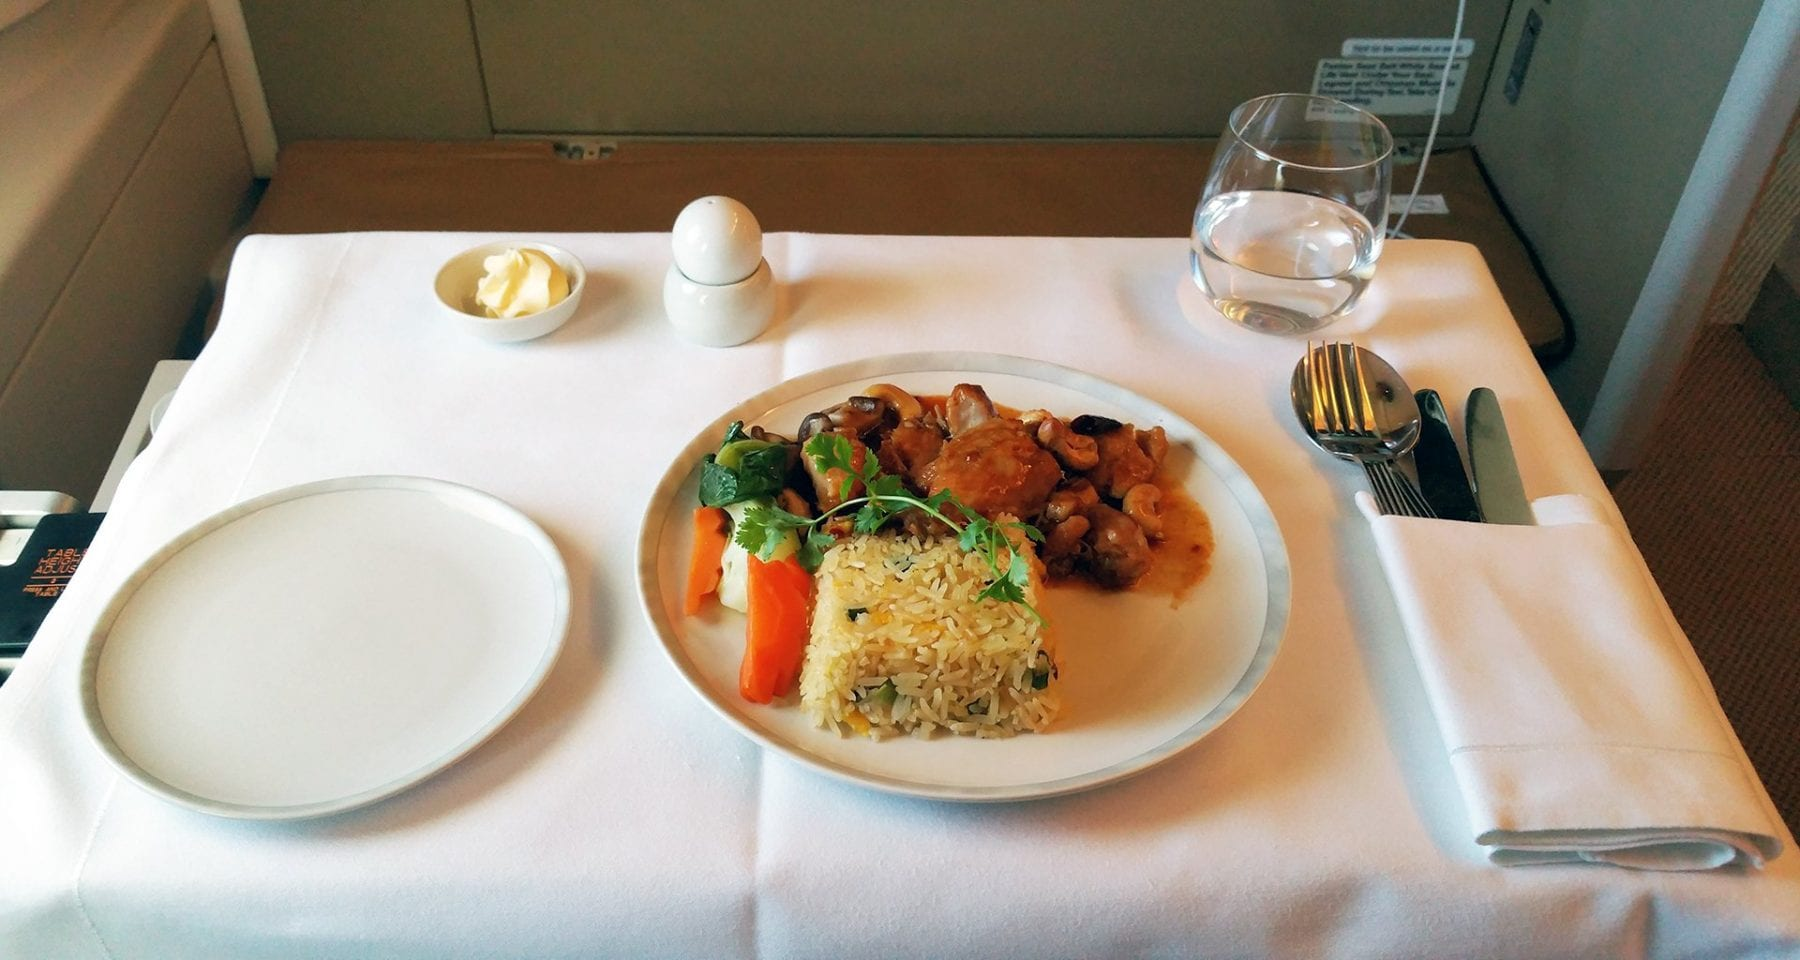 Singapore airlines business class lunch offering from Zurich to Singapore